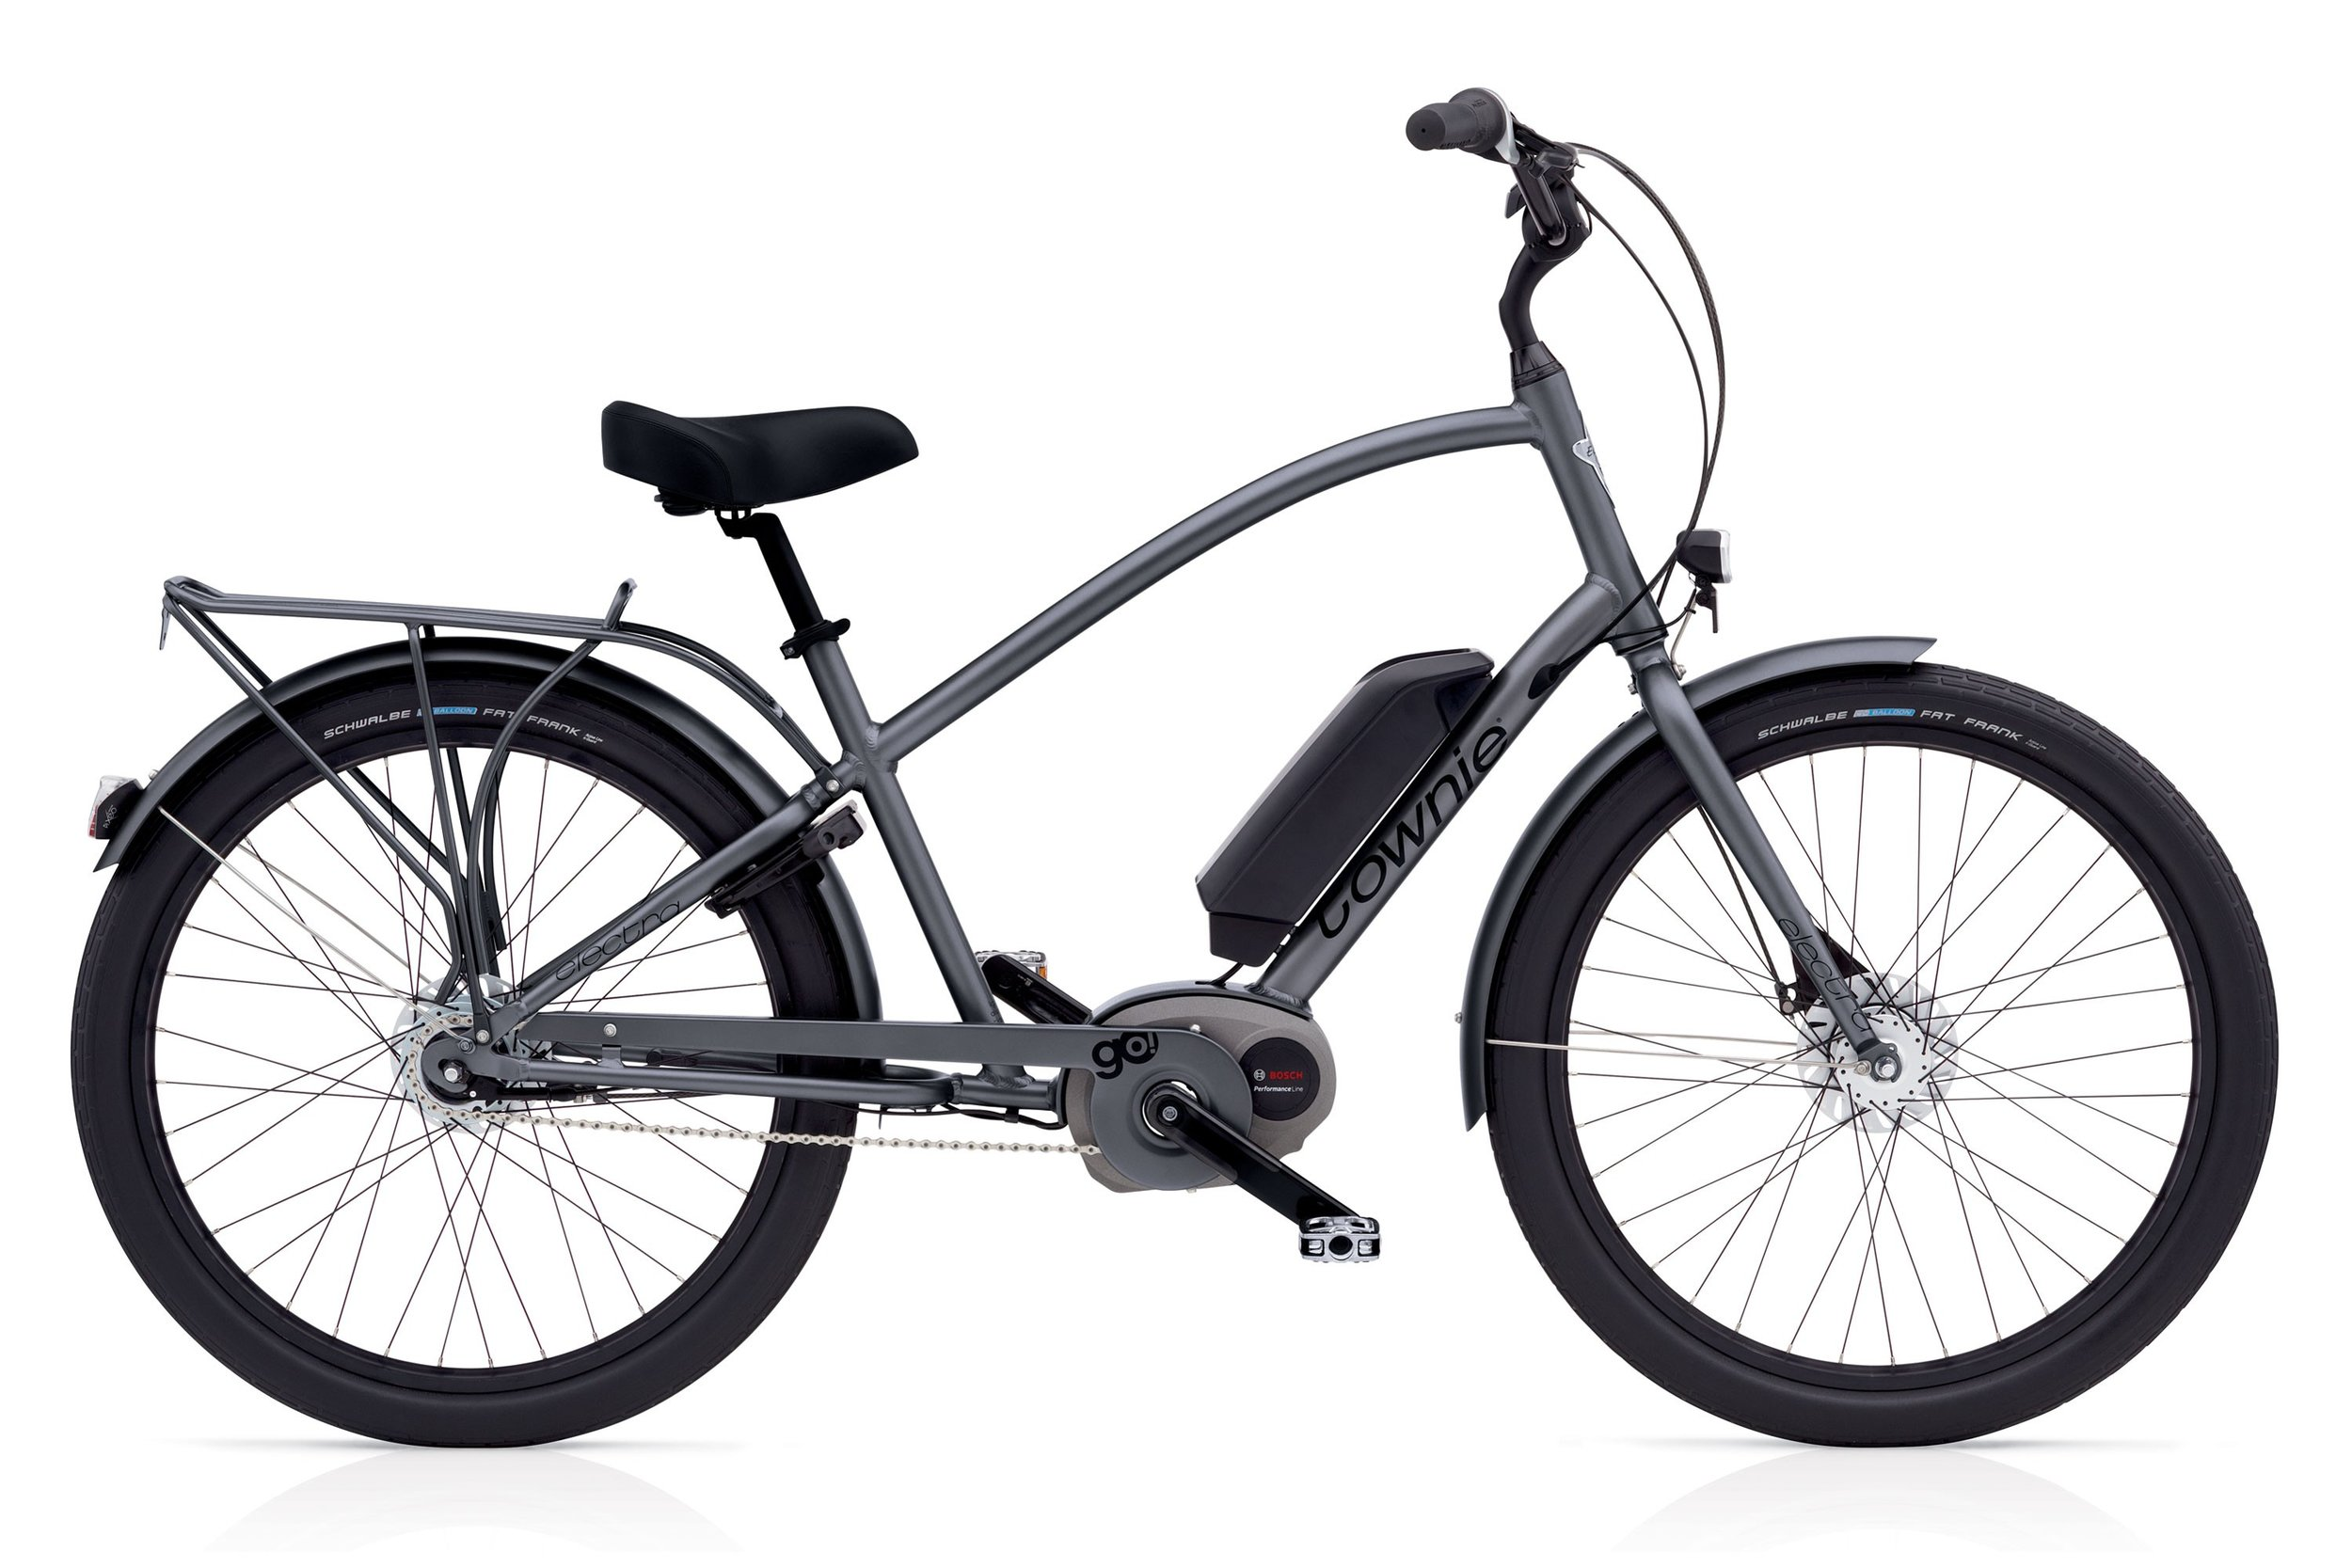 Meet the Townie! - Wait, you've never ridden an e-bike? You don't know what you're missing, new friend. Experience Ojai in a brand new way, and at your very own pace. Take it slow, or glide along at speeds up to 20mph. The choice is yours!Learn more ➝